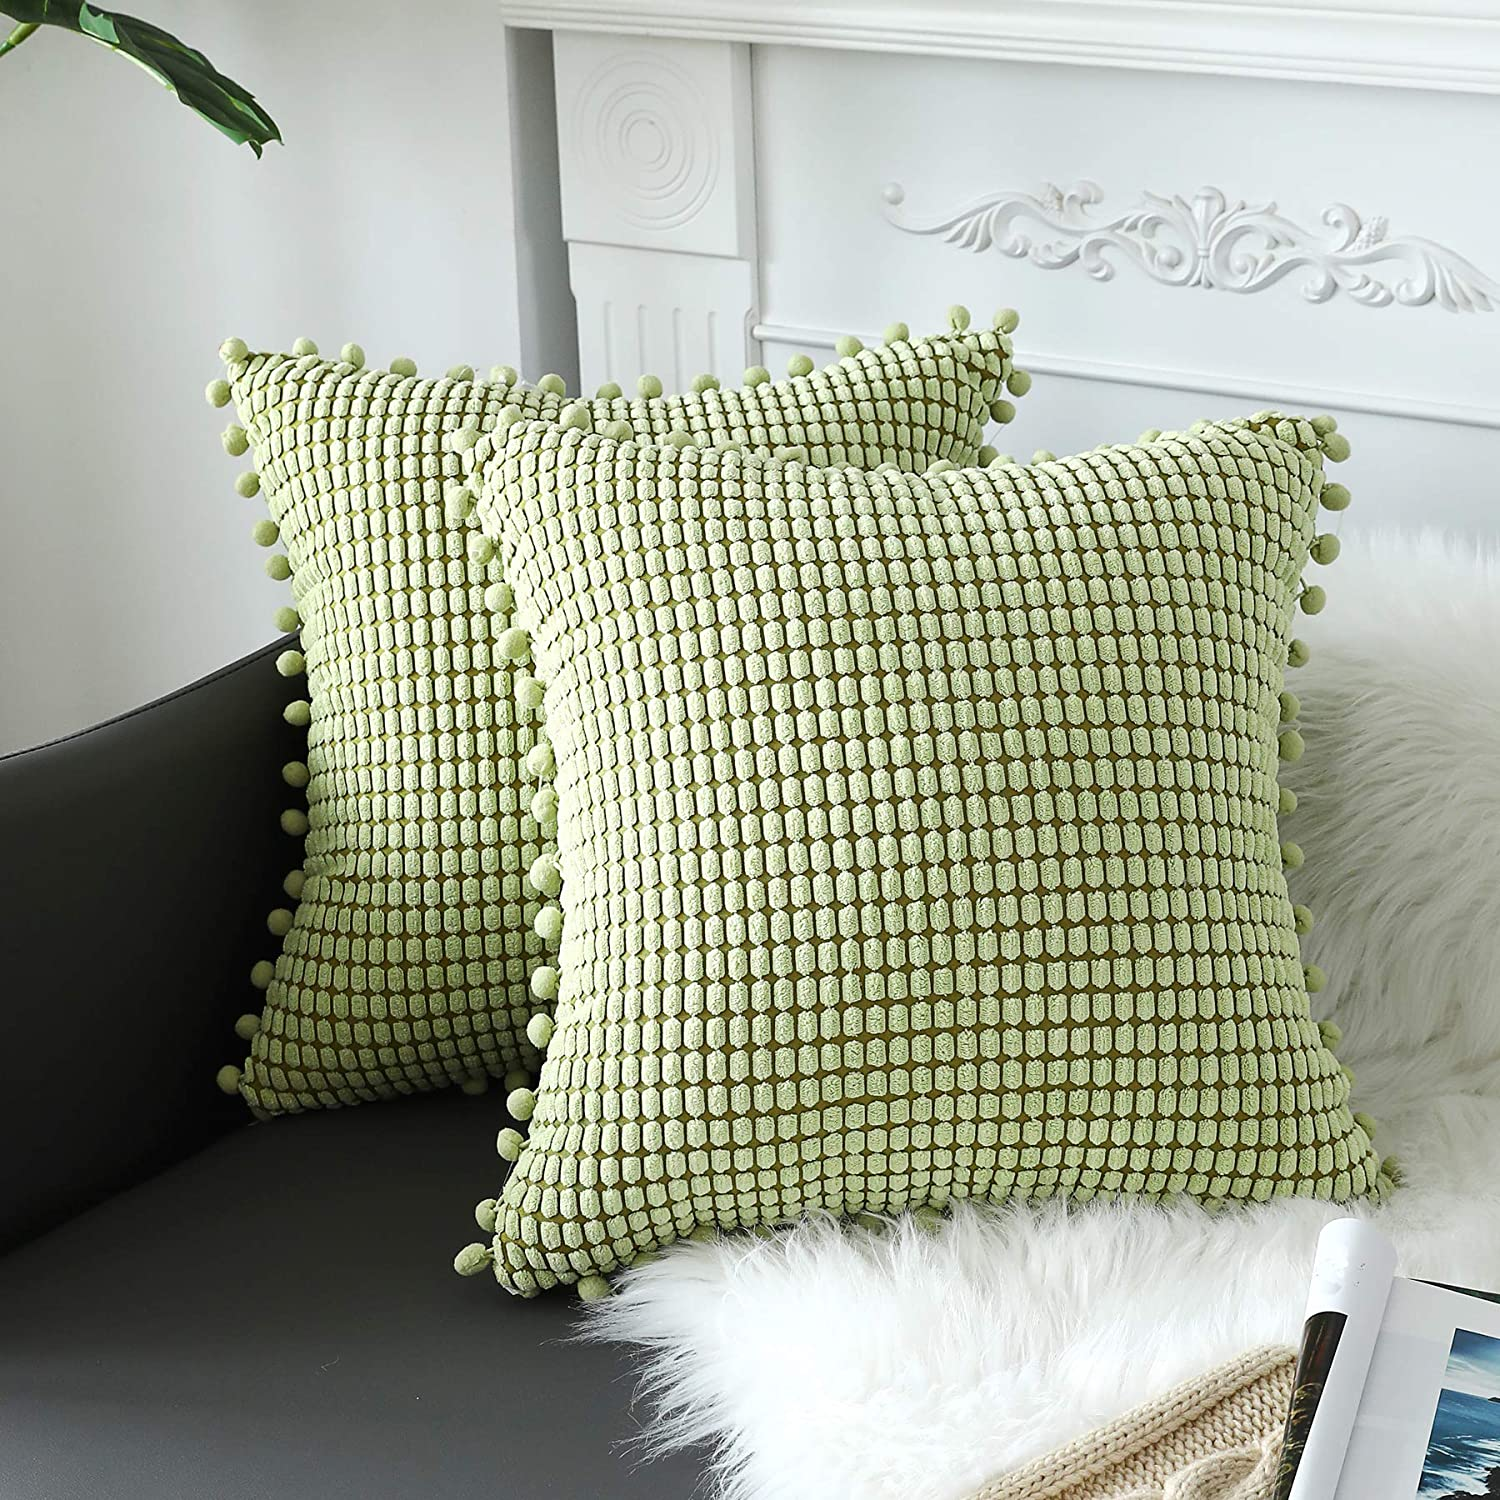 Sykting Decorative Pillow Covers Soft Corduroy Textured Throw Pillow Cases With Pom Poms For Couch Sofa Bed Chair Pack Of 2 20x20 Inch Sage Green Home Kitchen